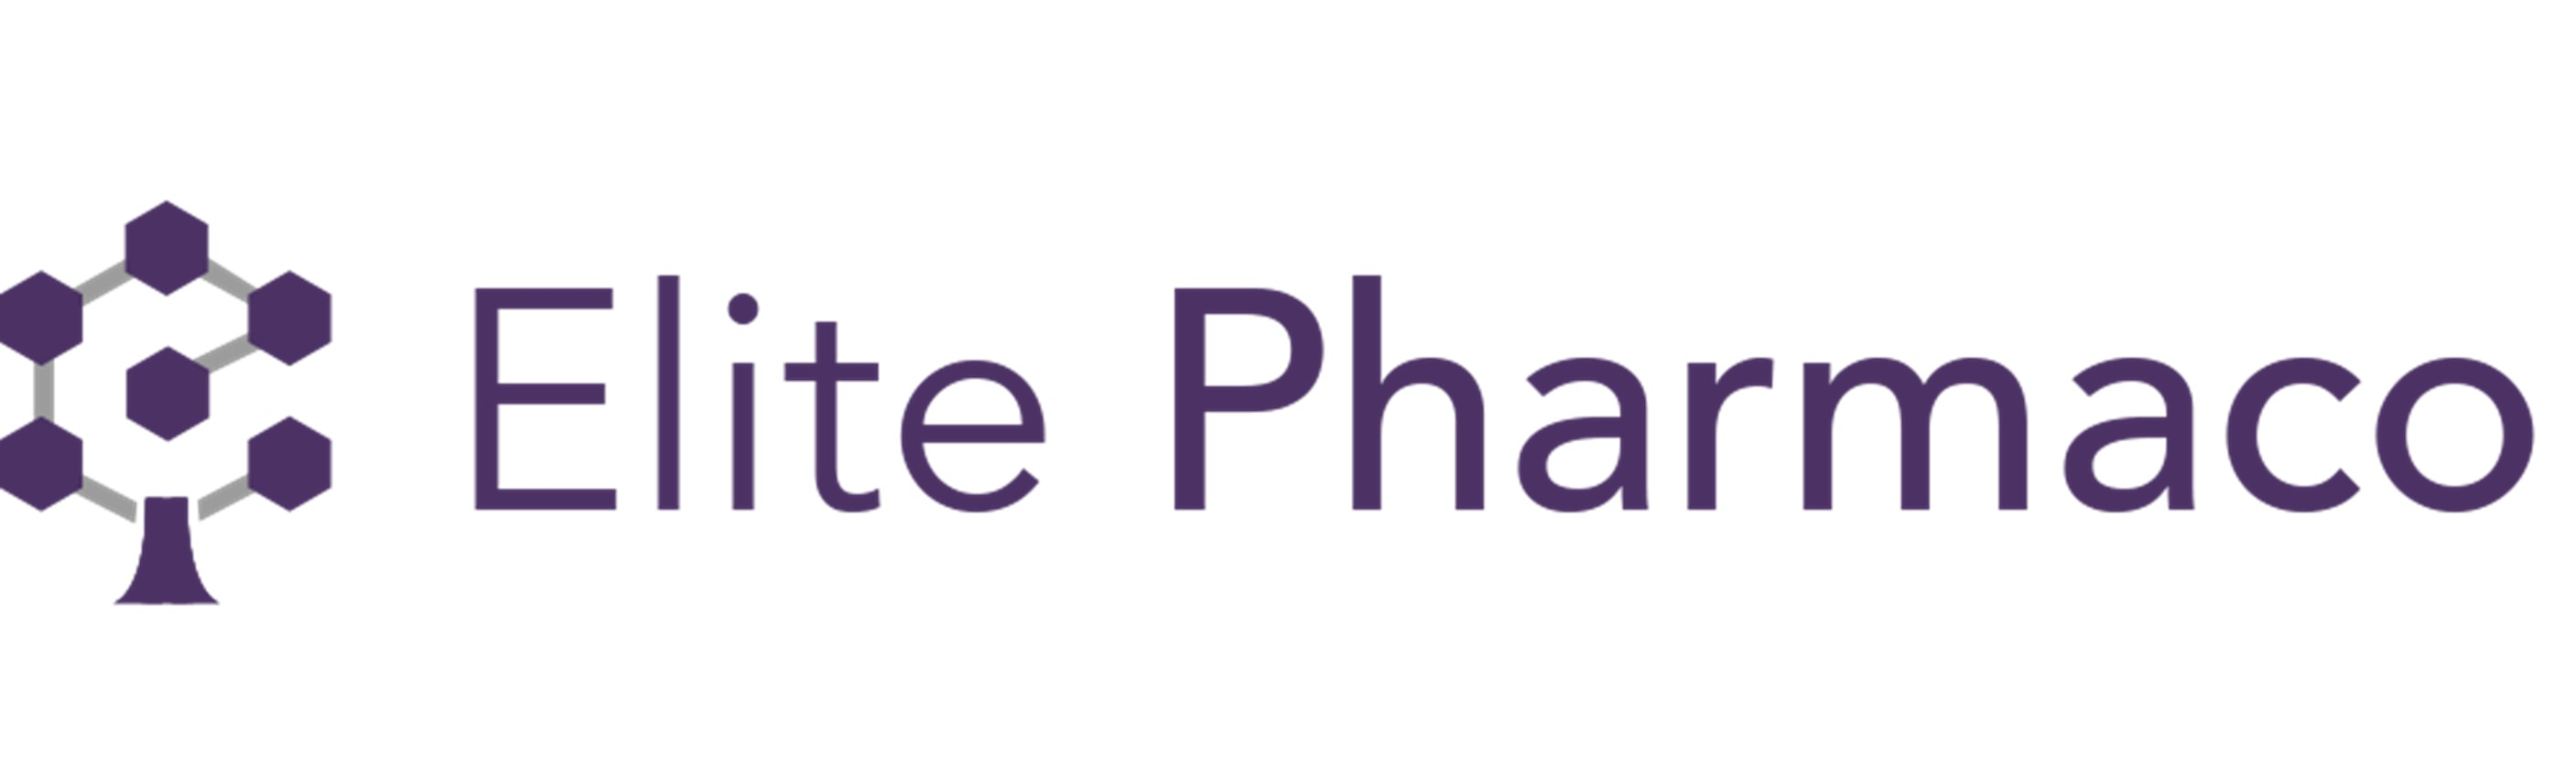 Elite Pharmaco Launches in London and is set to transform the Medical Cannabis Market.